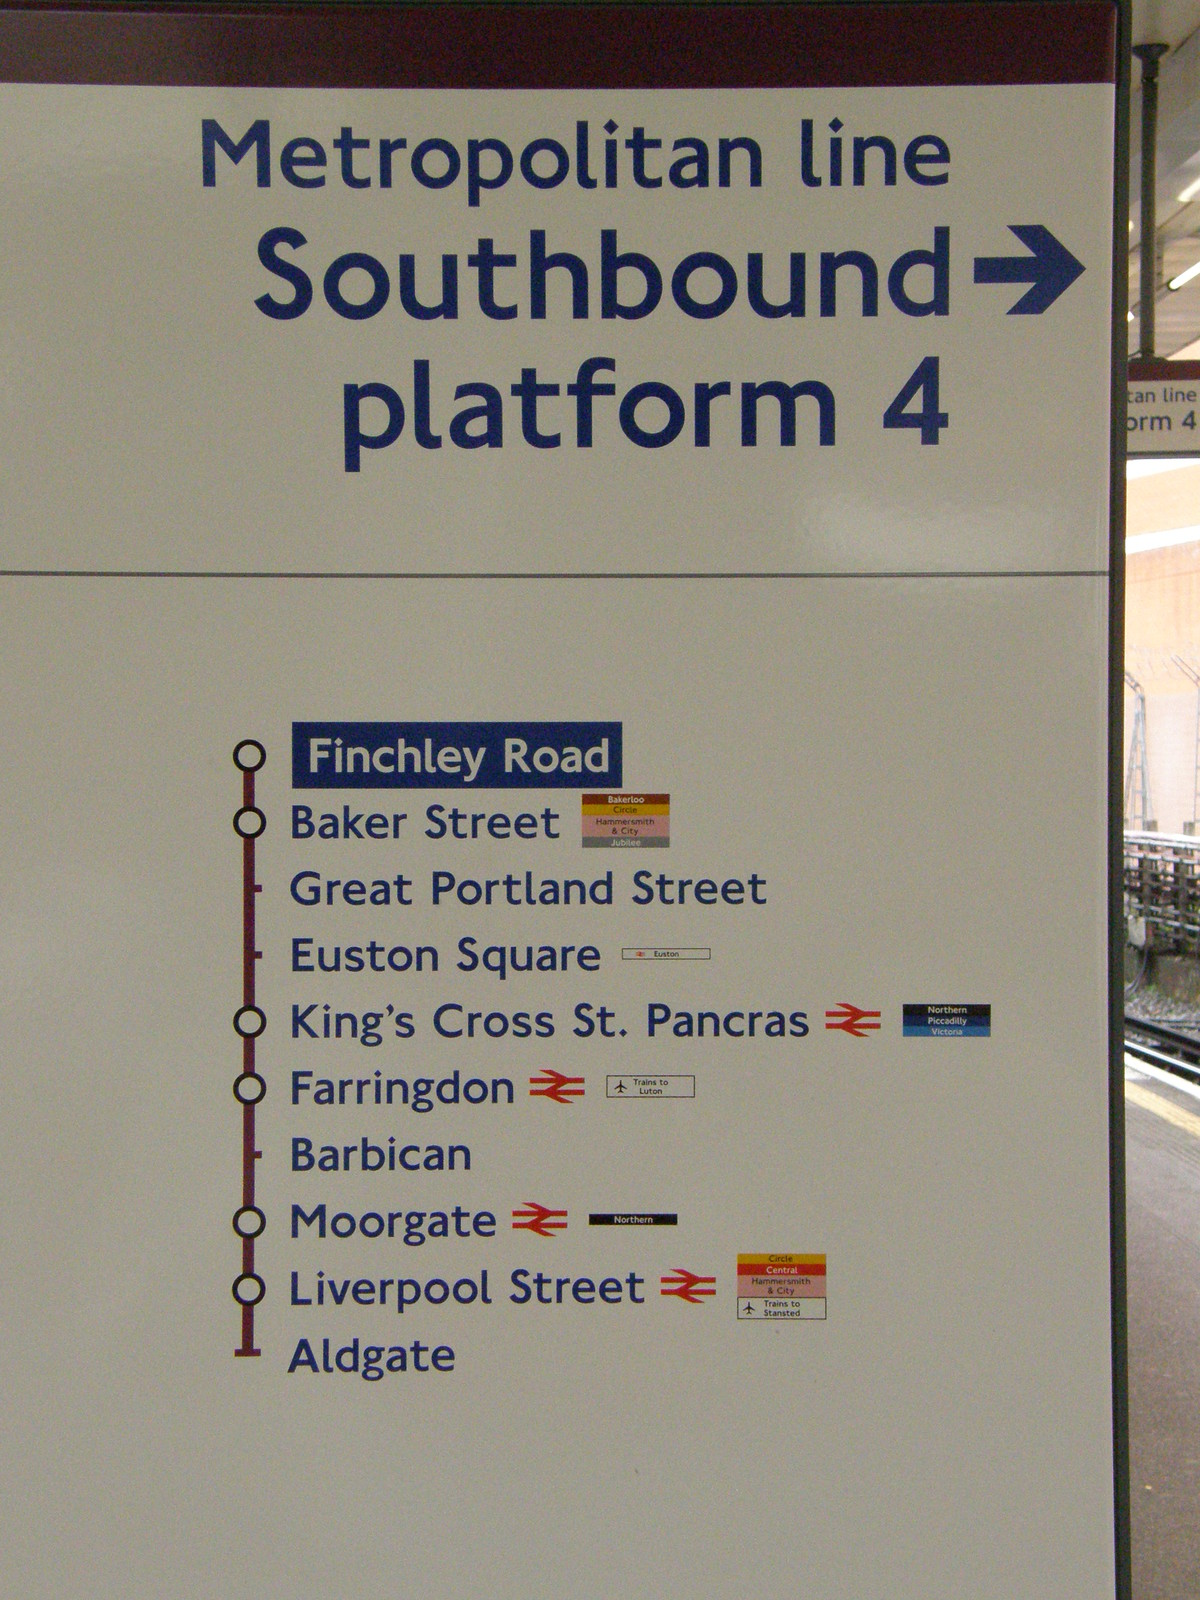 A map showing the Metropolitan line from Aldgate to Finchley Road